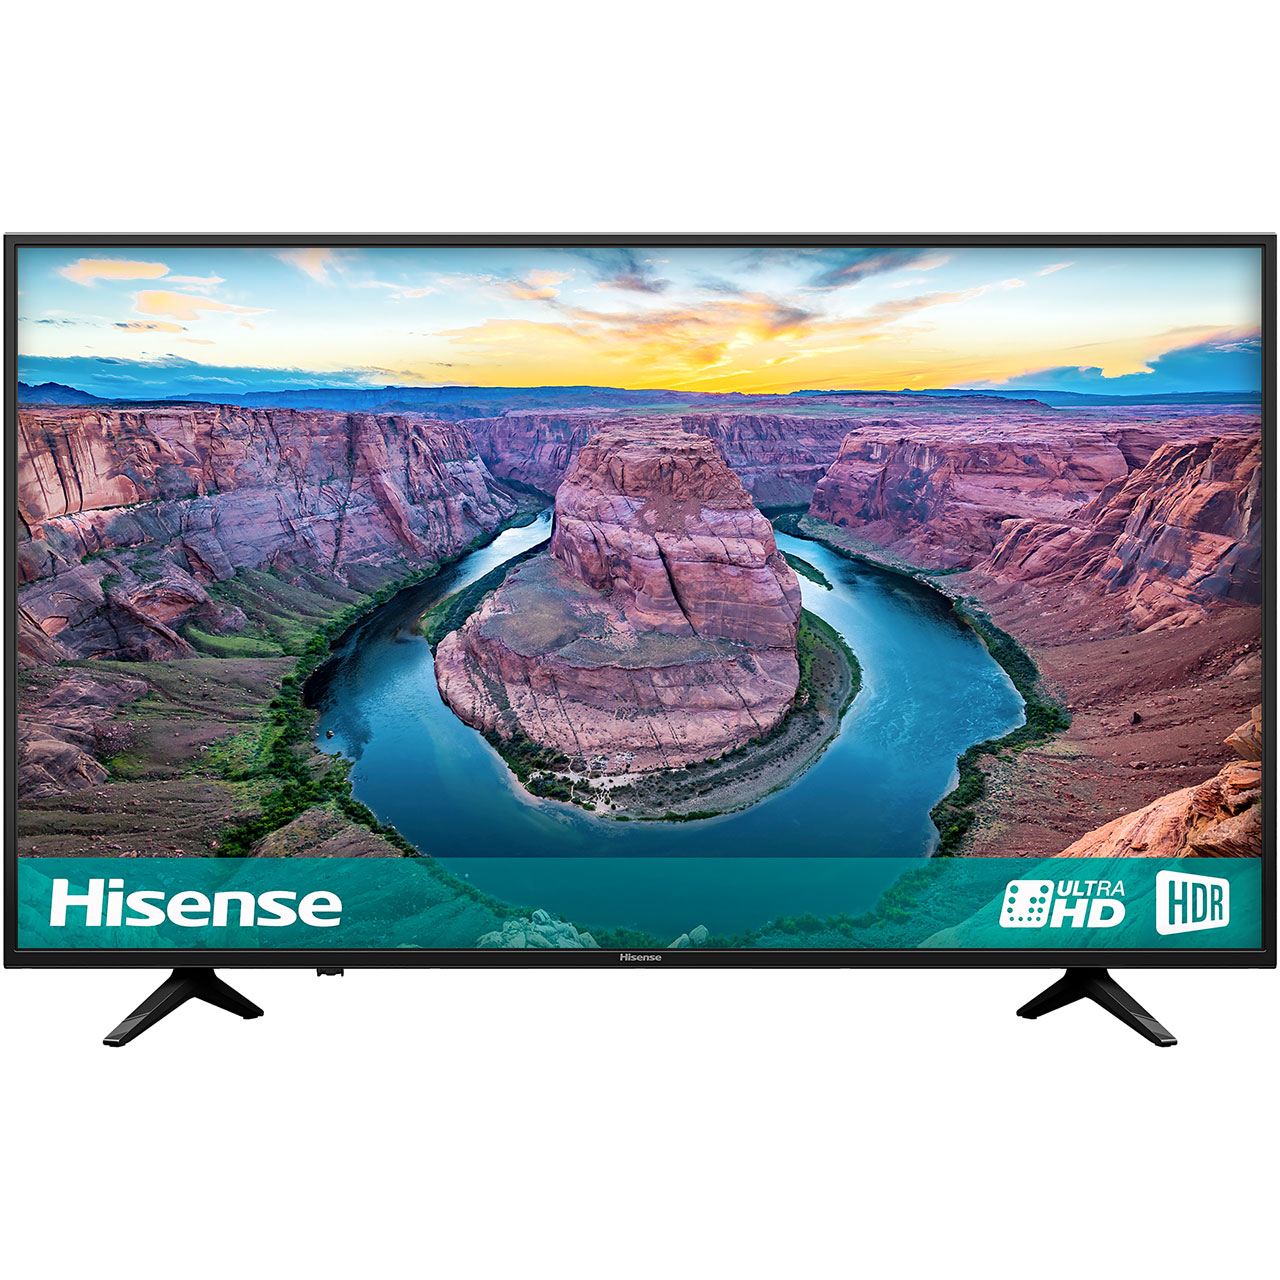 Pictur Image Titled Connect Hisense Tv — ZwiftItaly